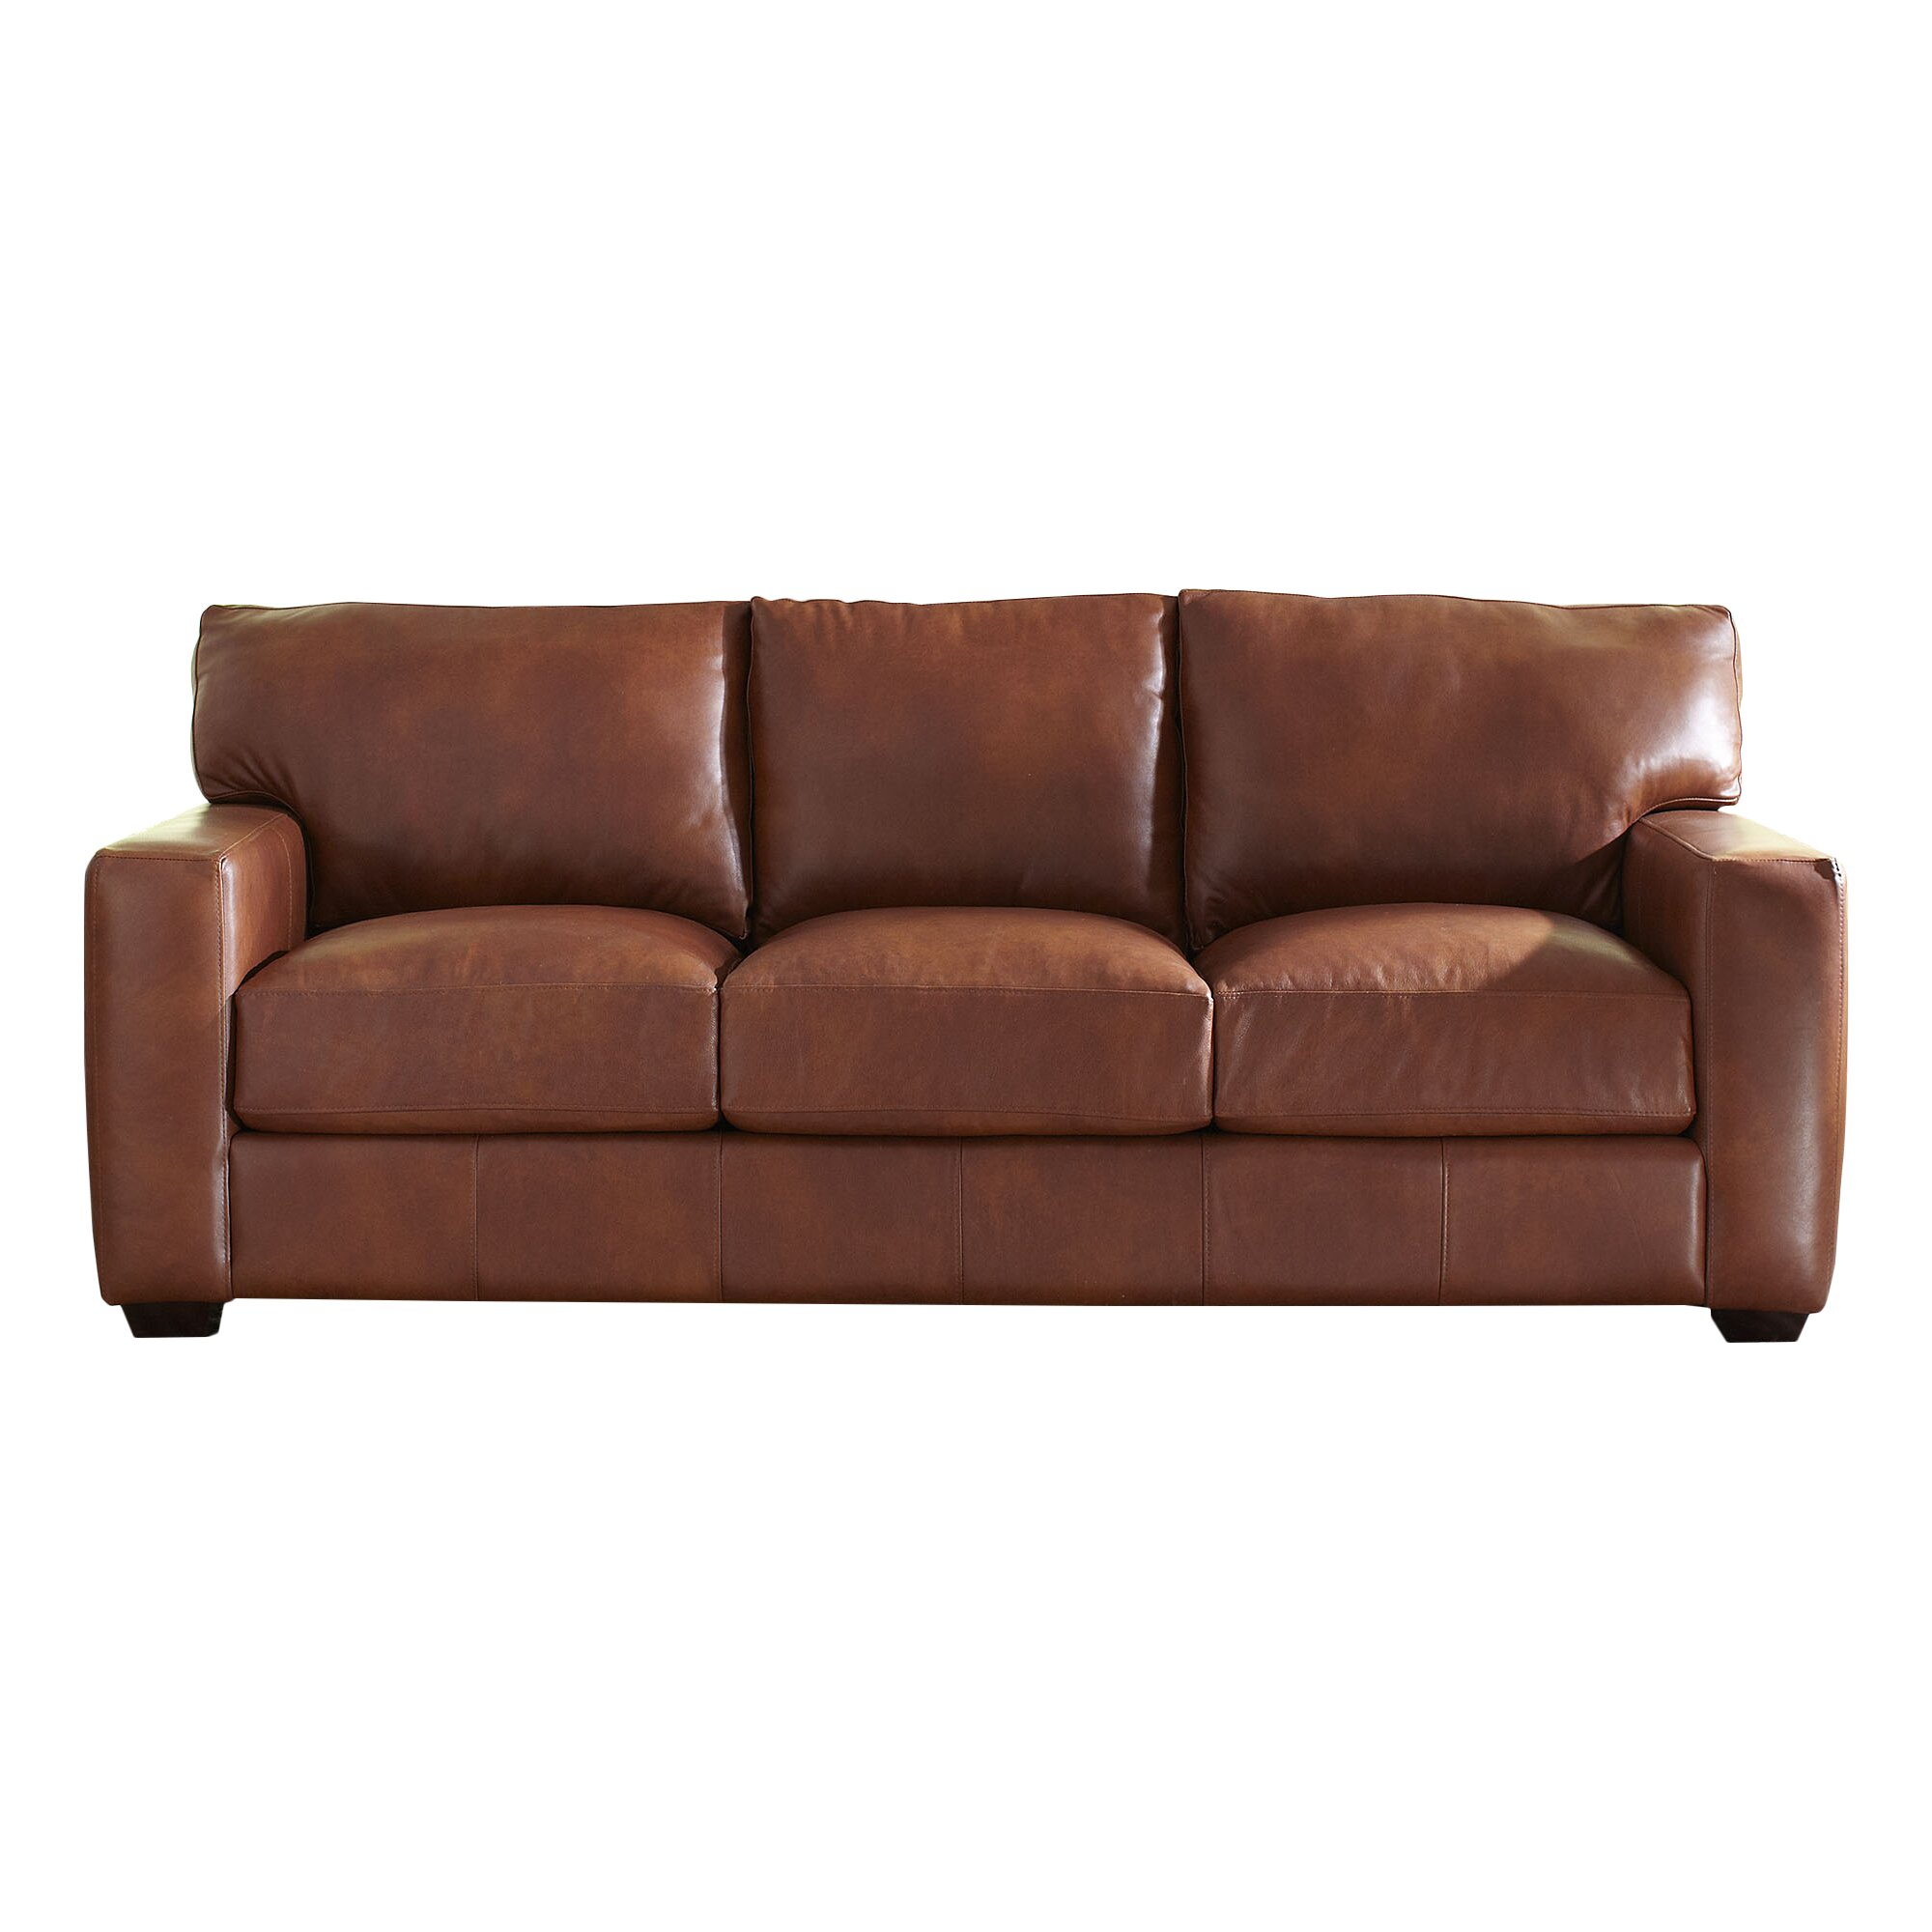 Birch lane pratt leather sofa reviews wayfair for Leather sectional sofa lane